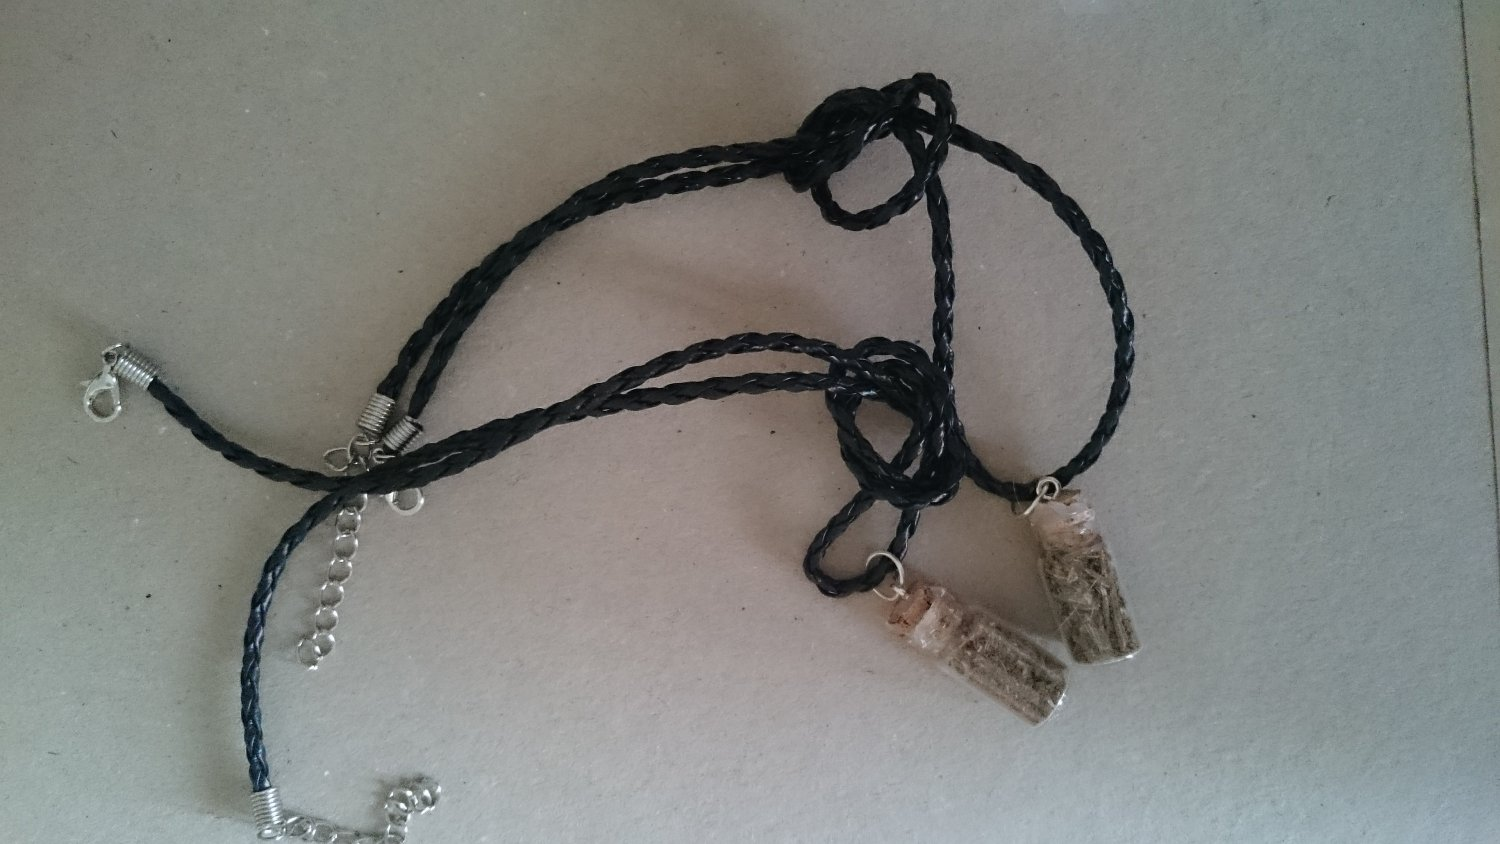 Witches Spell Bottle Pendant for Prosperity | Wicca | Witchcraft | Pagan | Occult | Spells | Magick